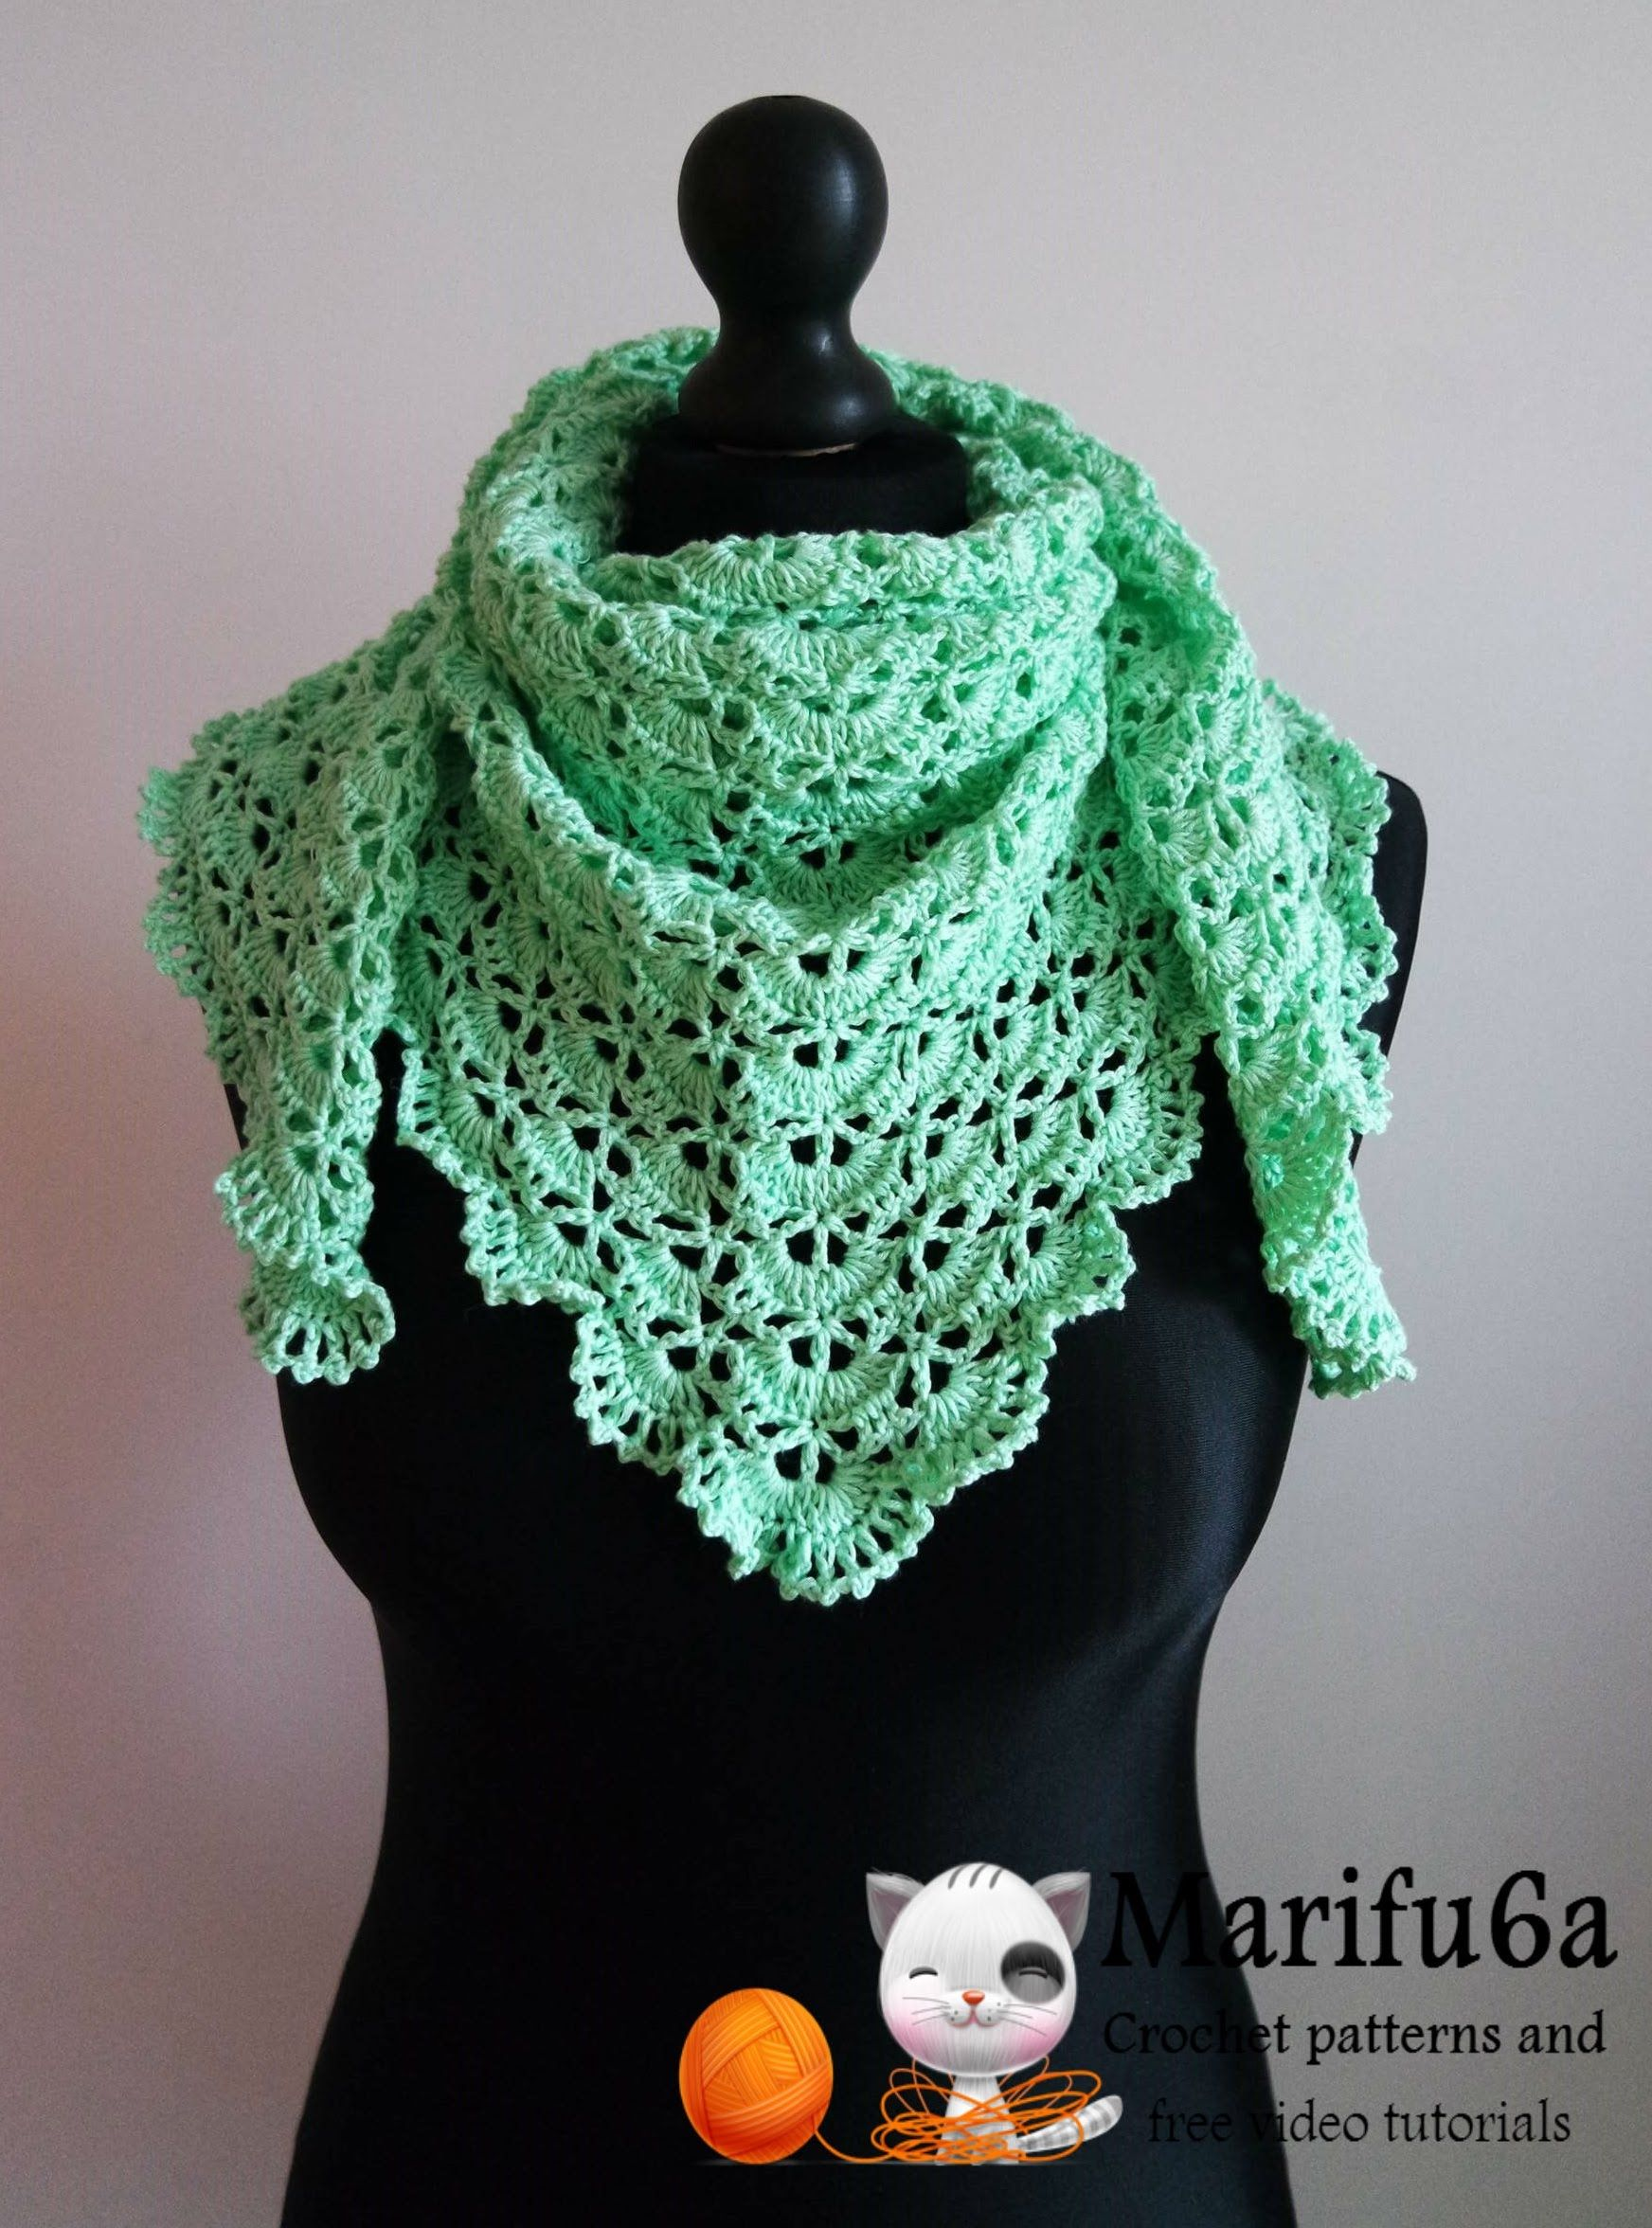 How to crochet spring baktus wrap shawl free pattern tutorial by ...